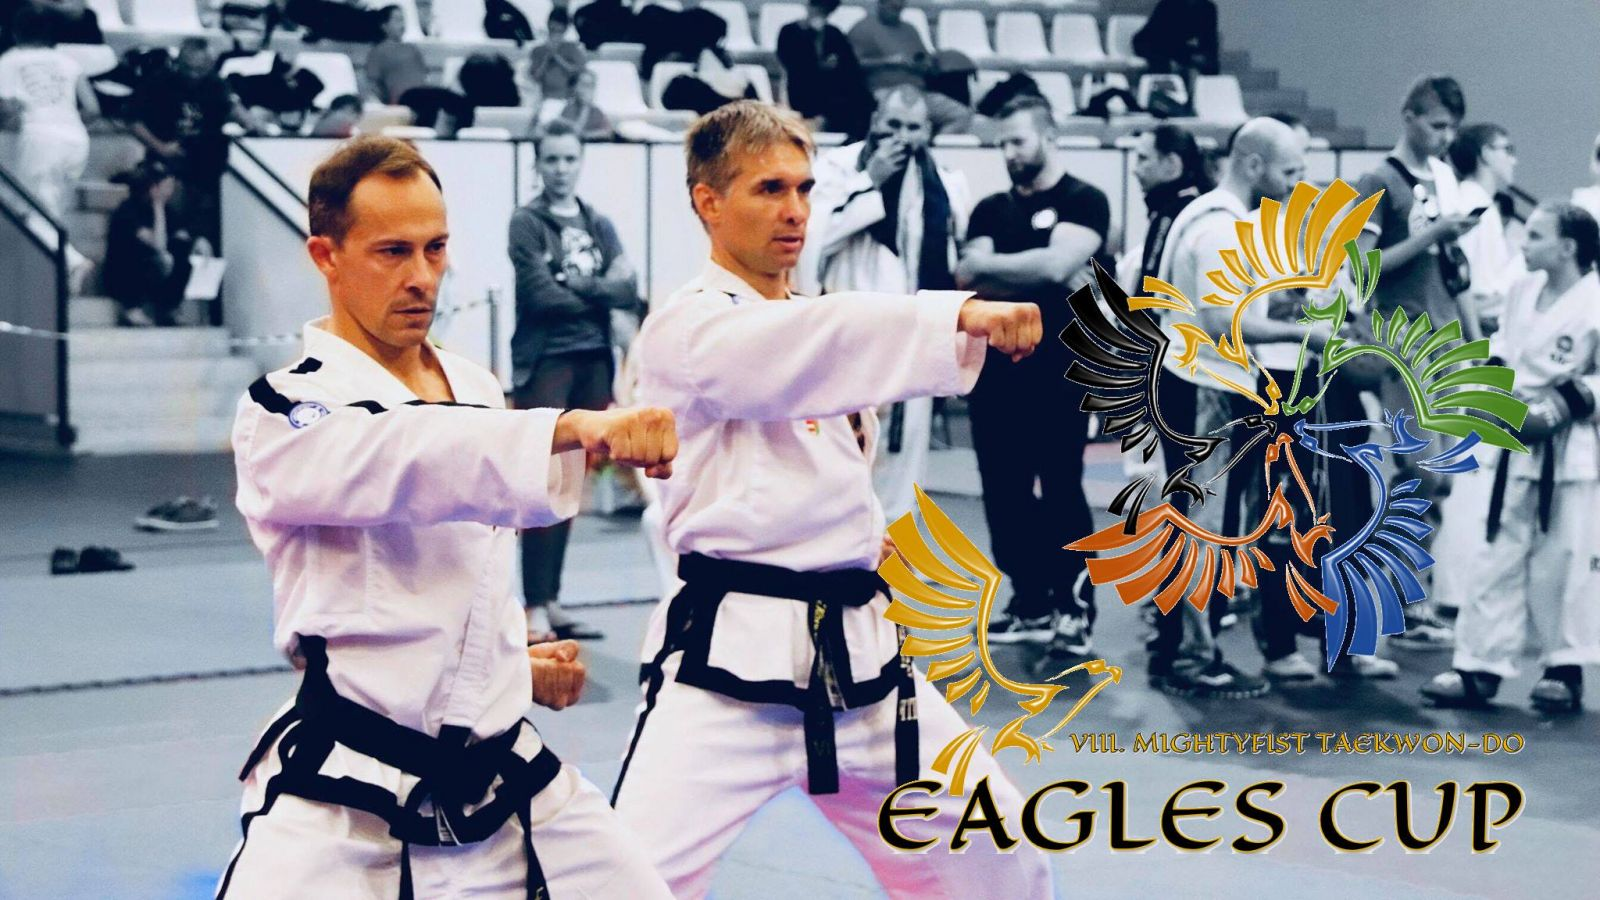 VIII. Mightyfist Eagles Cup taekwon-do verseny